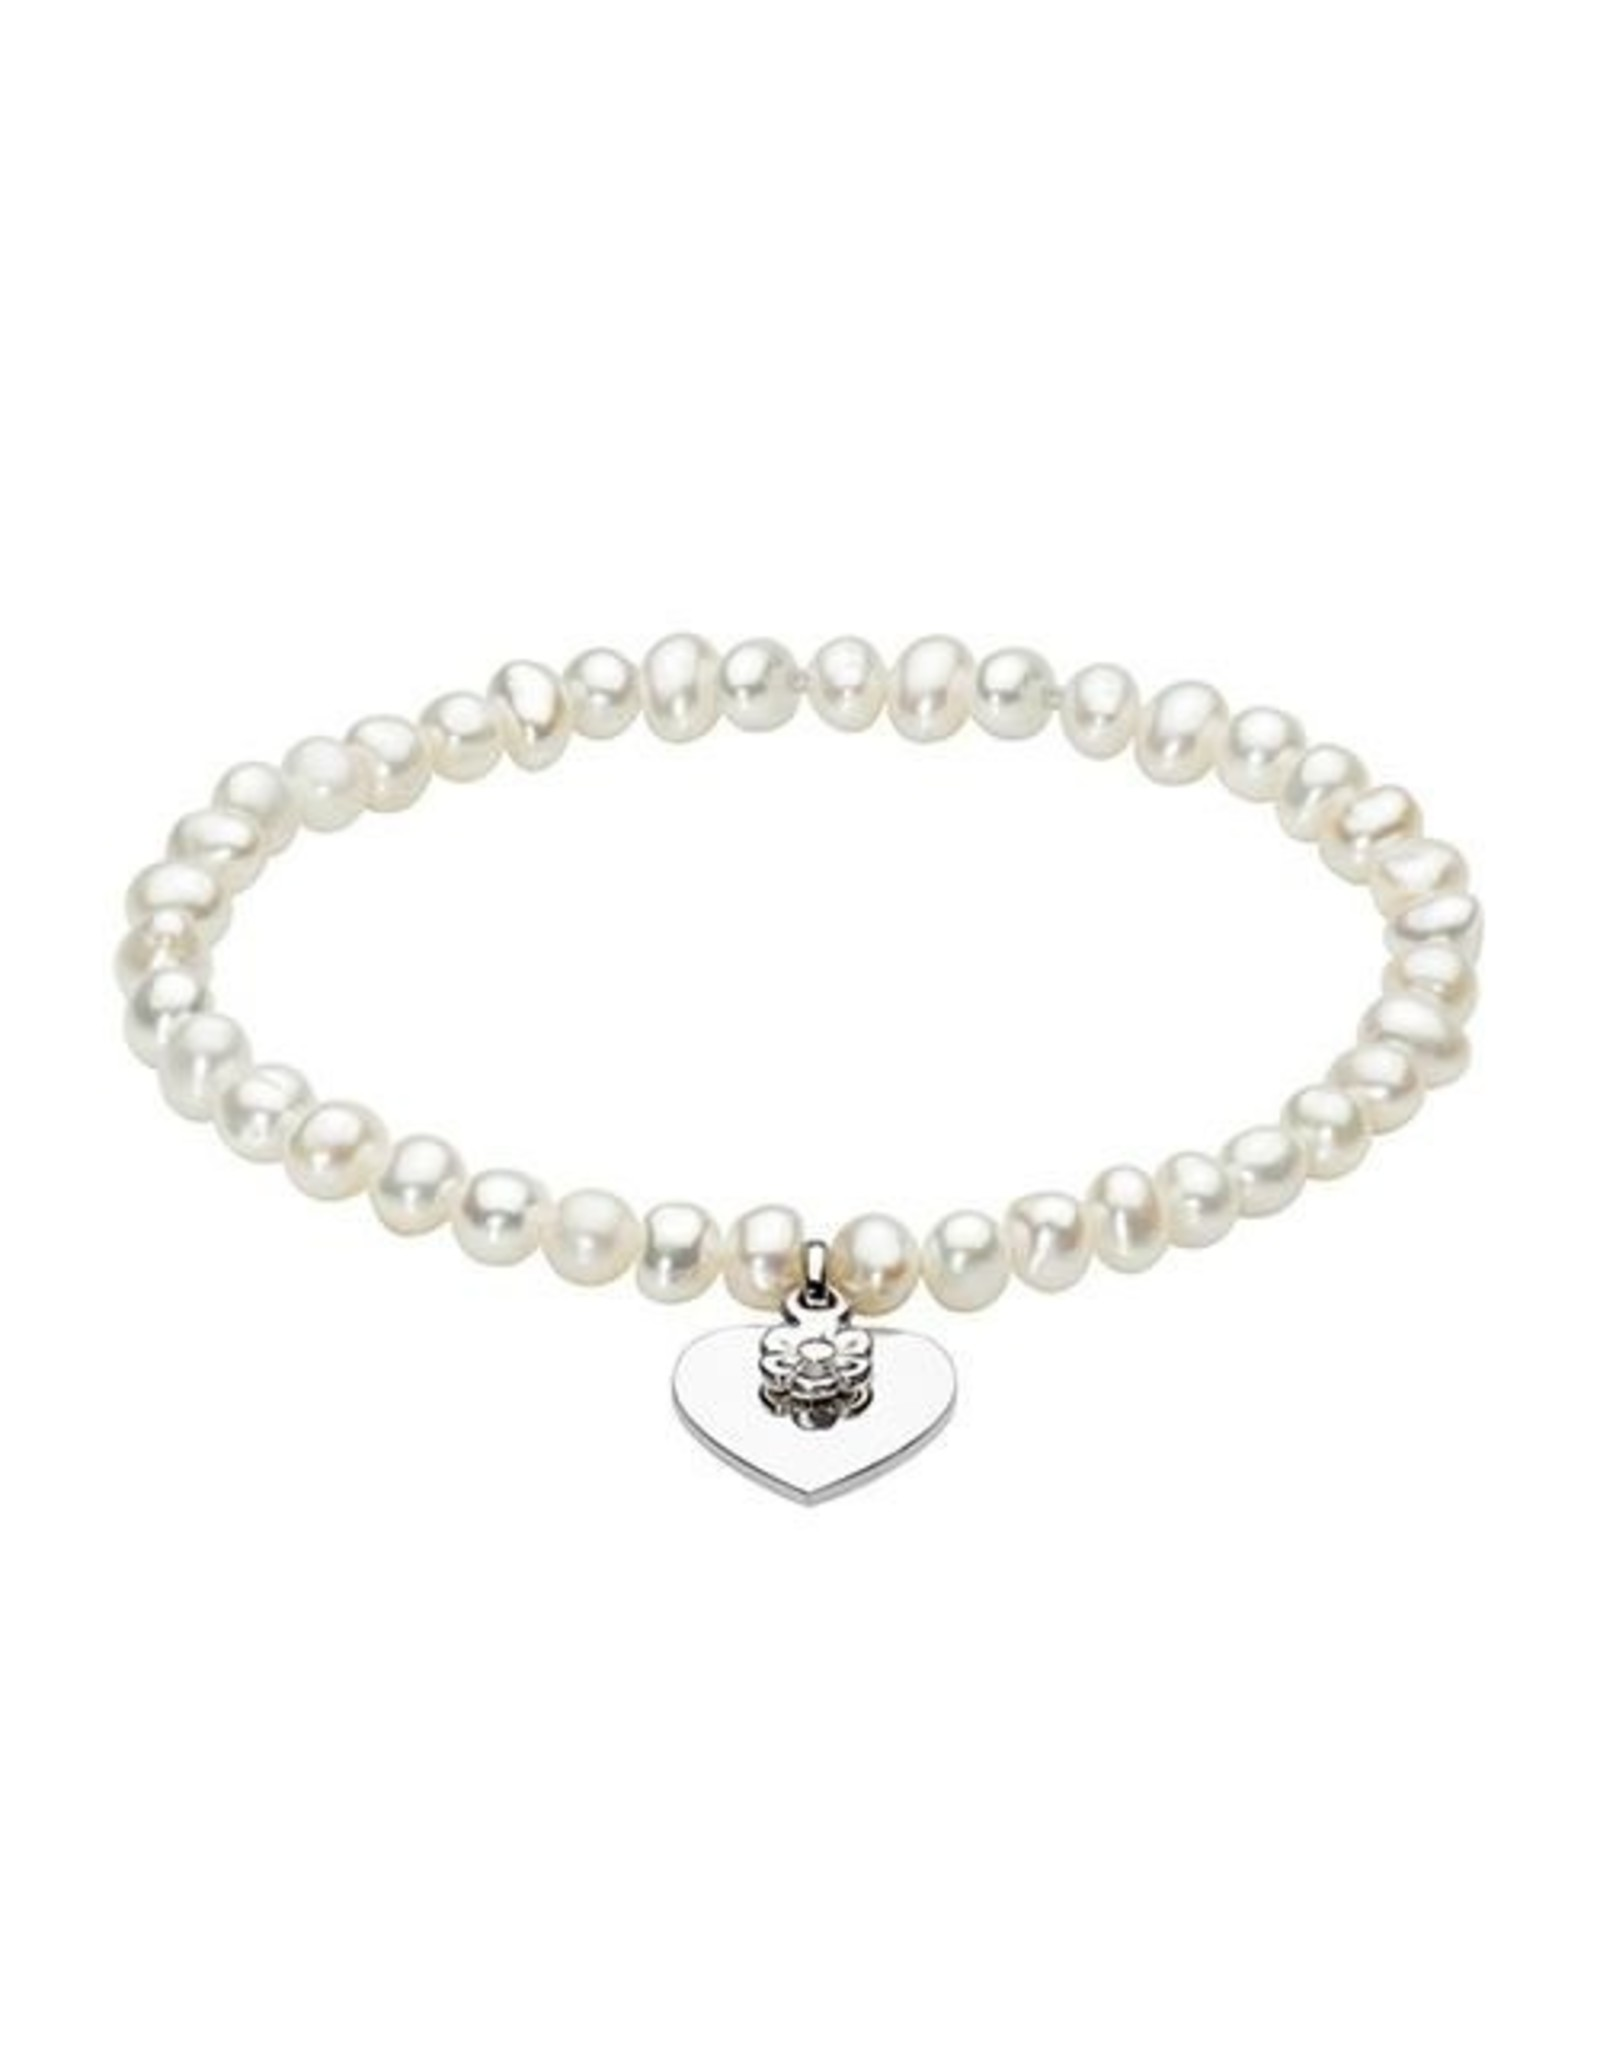 Girls Freshwater Pearl Bracelet with Heart and Daisy Charm